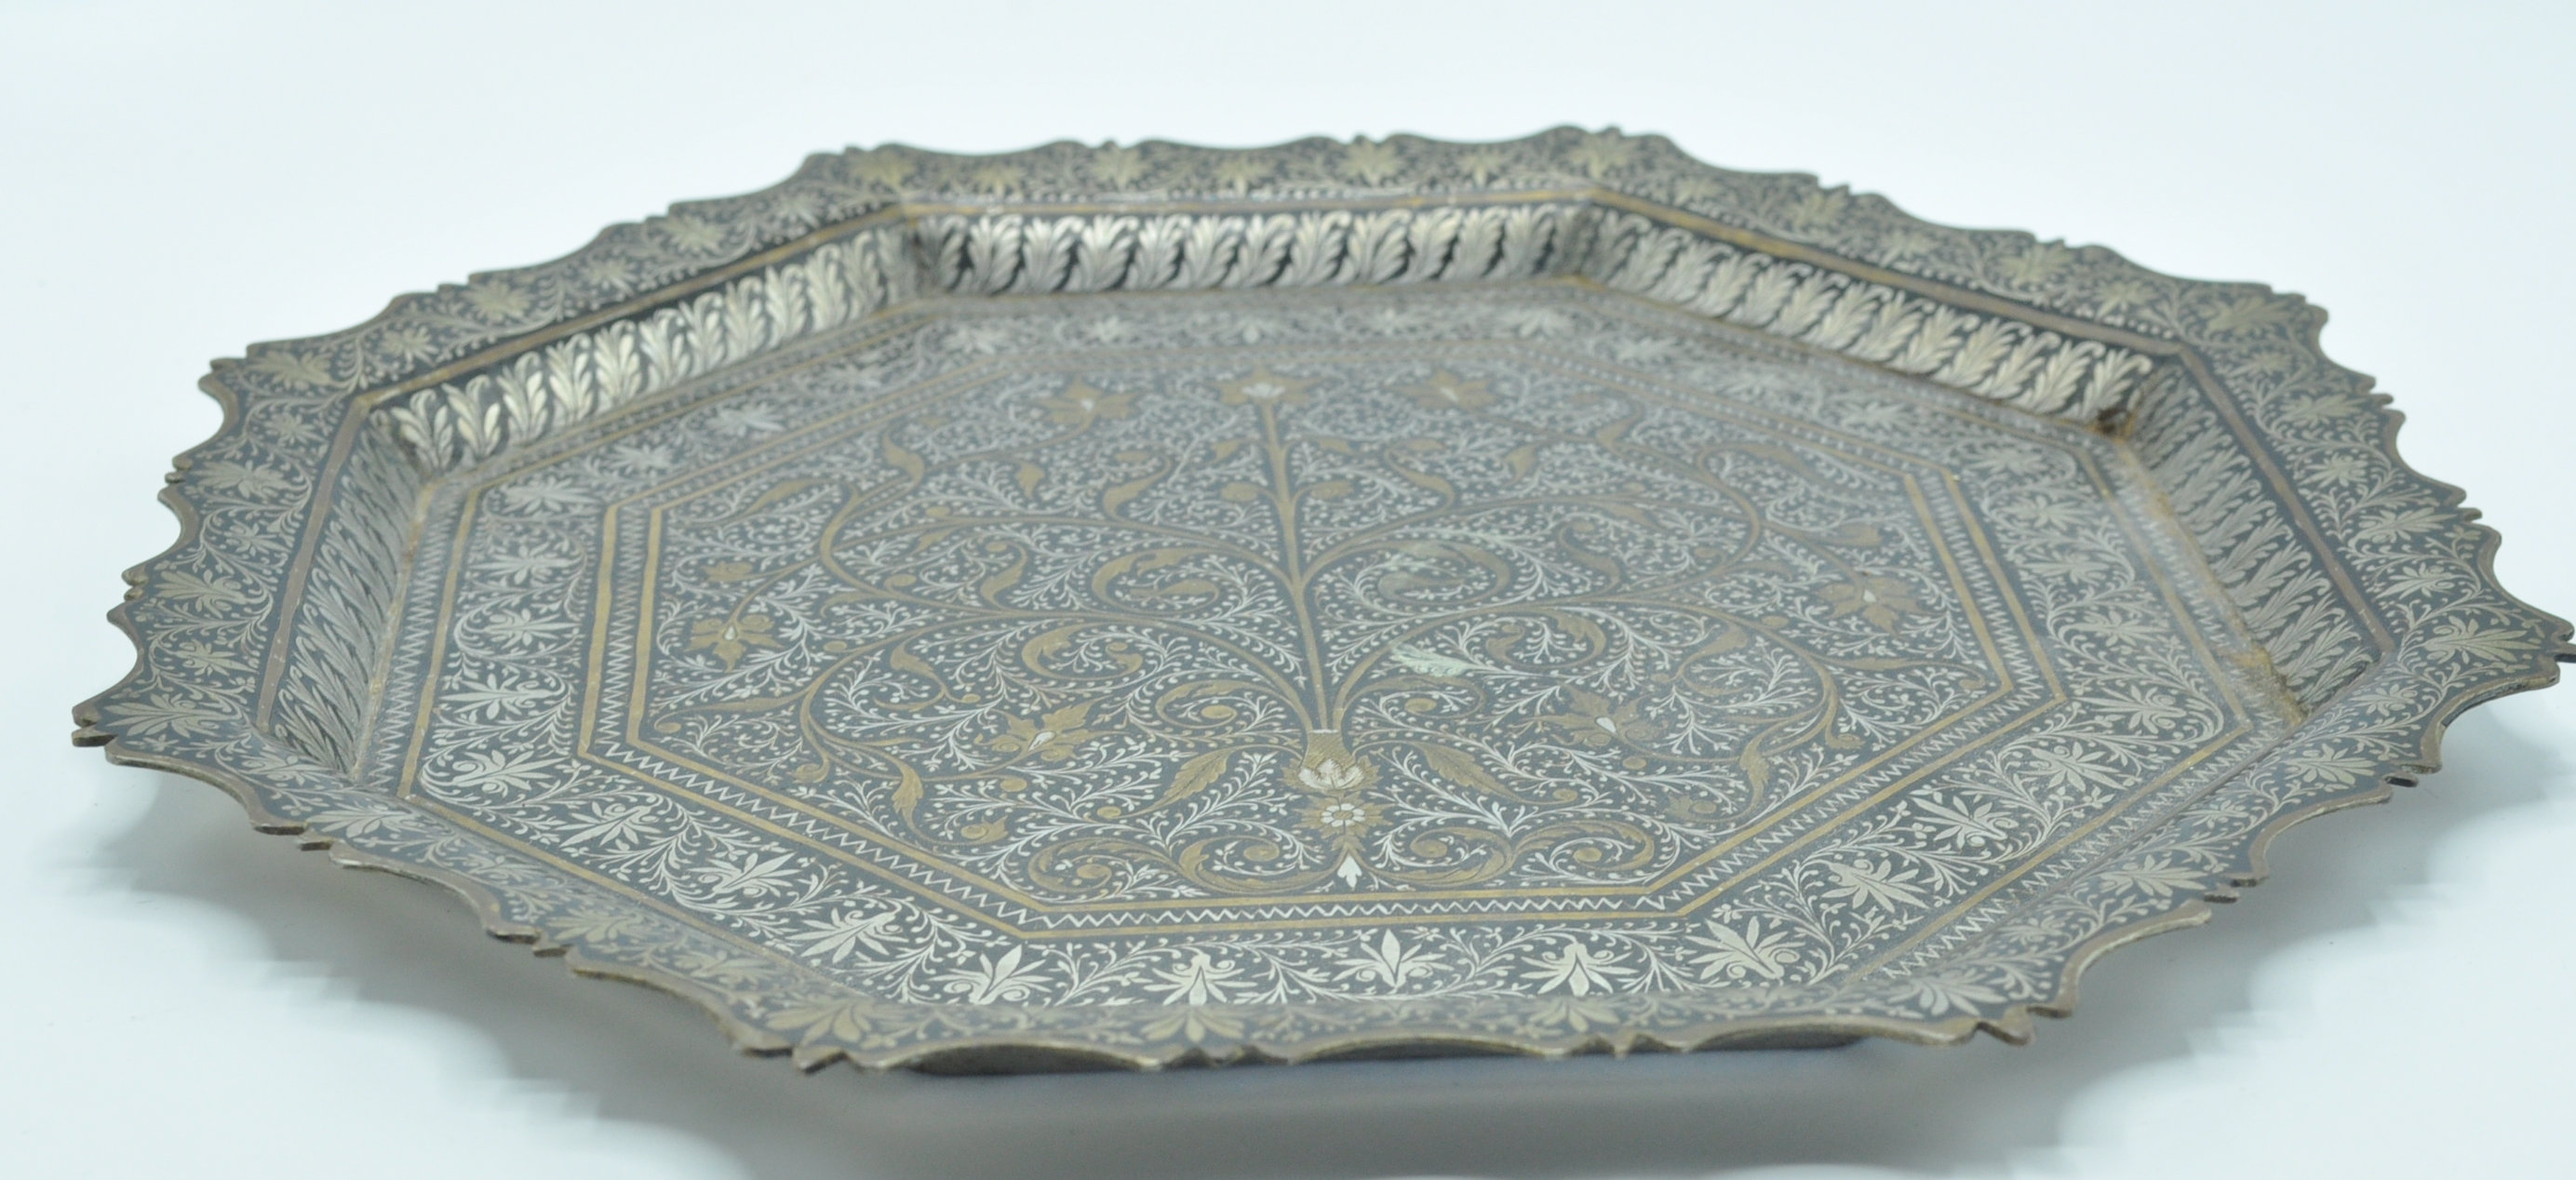 ISLAMIC SILVER PLATE AND BRASS CARD TRAY SALVER - Image 4 of 6